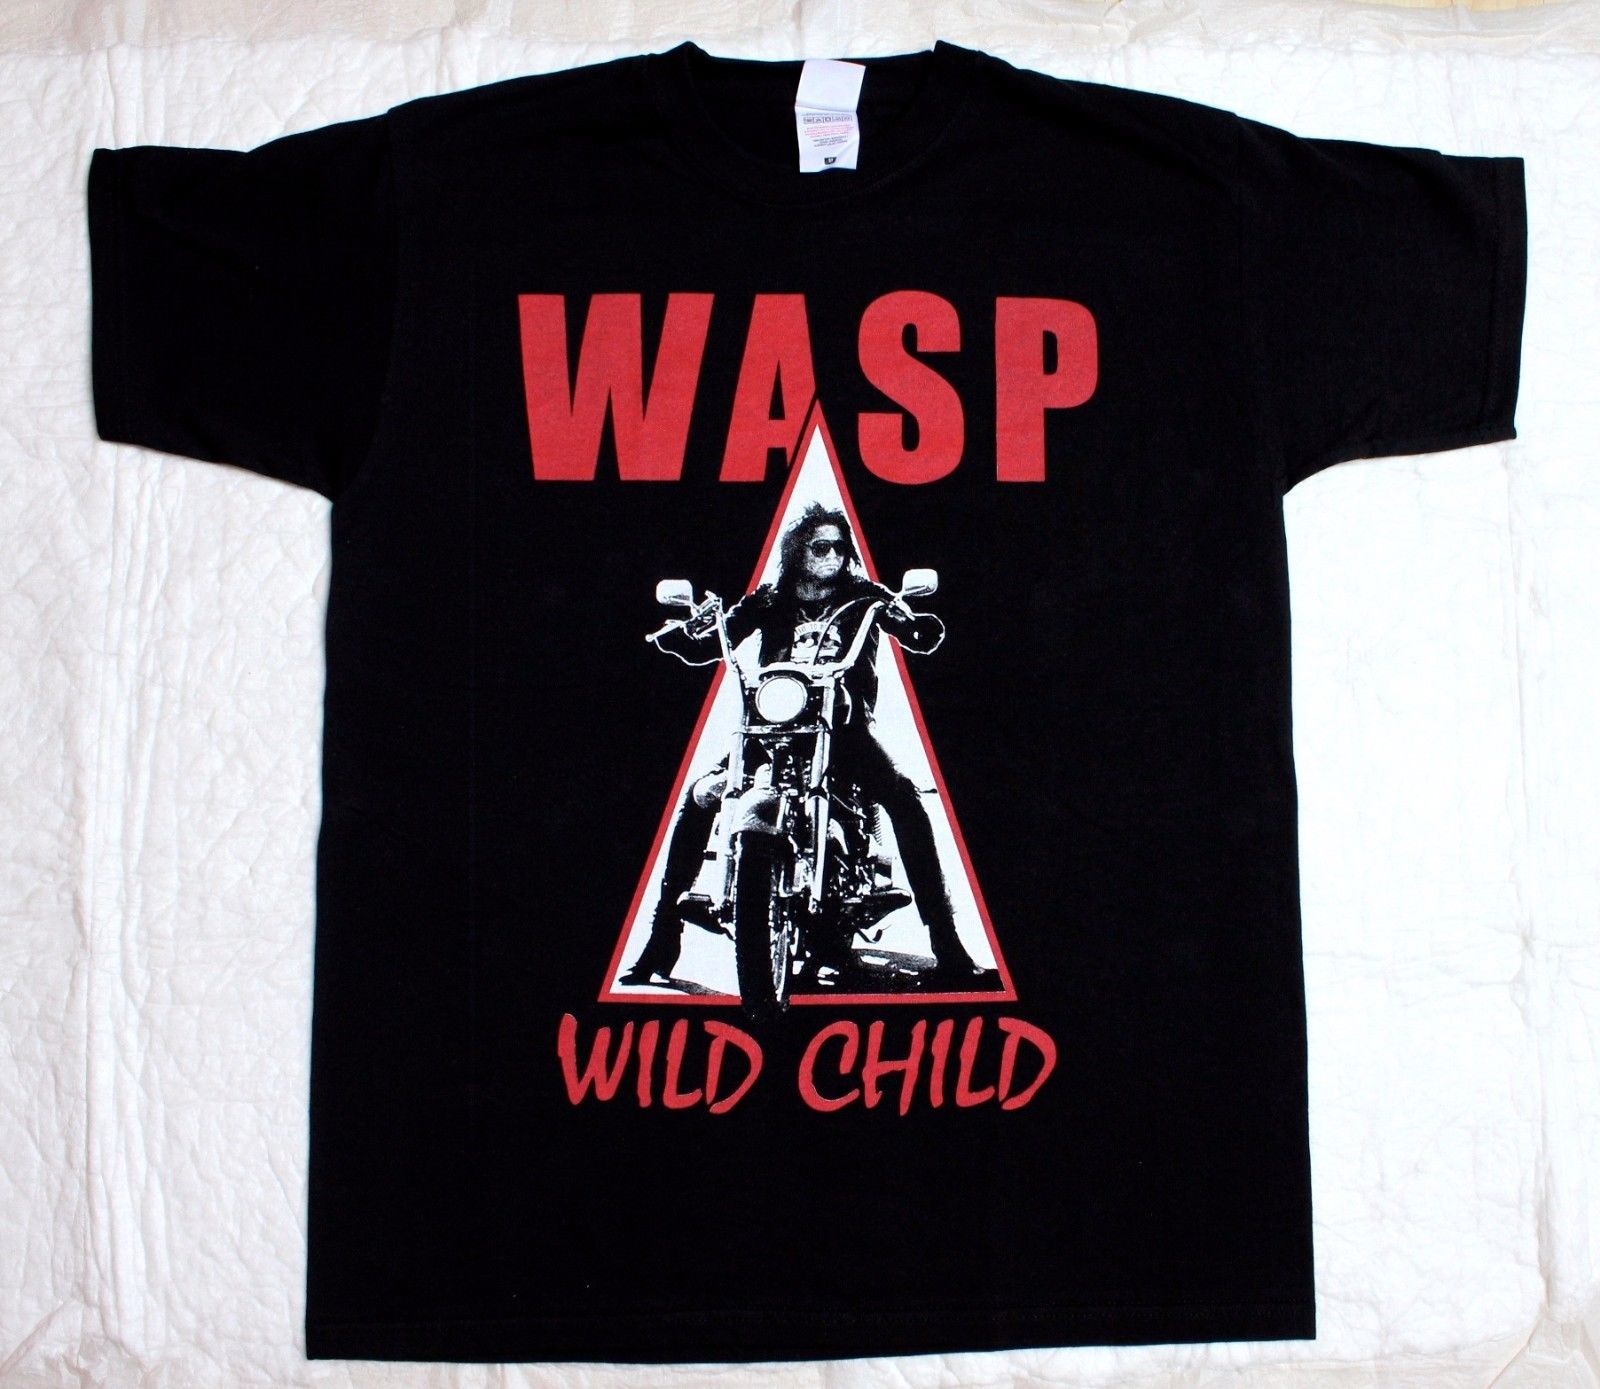 W.A.S.P. WILD CHILD85 HEAVY METAL BAND WASP TWISTED SISTER NEW BLACK T-SHIRT